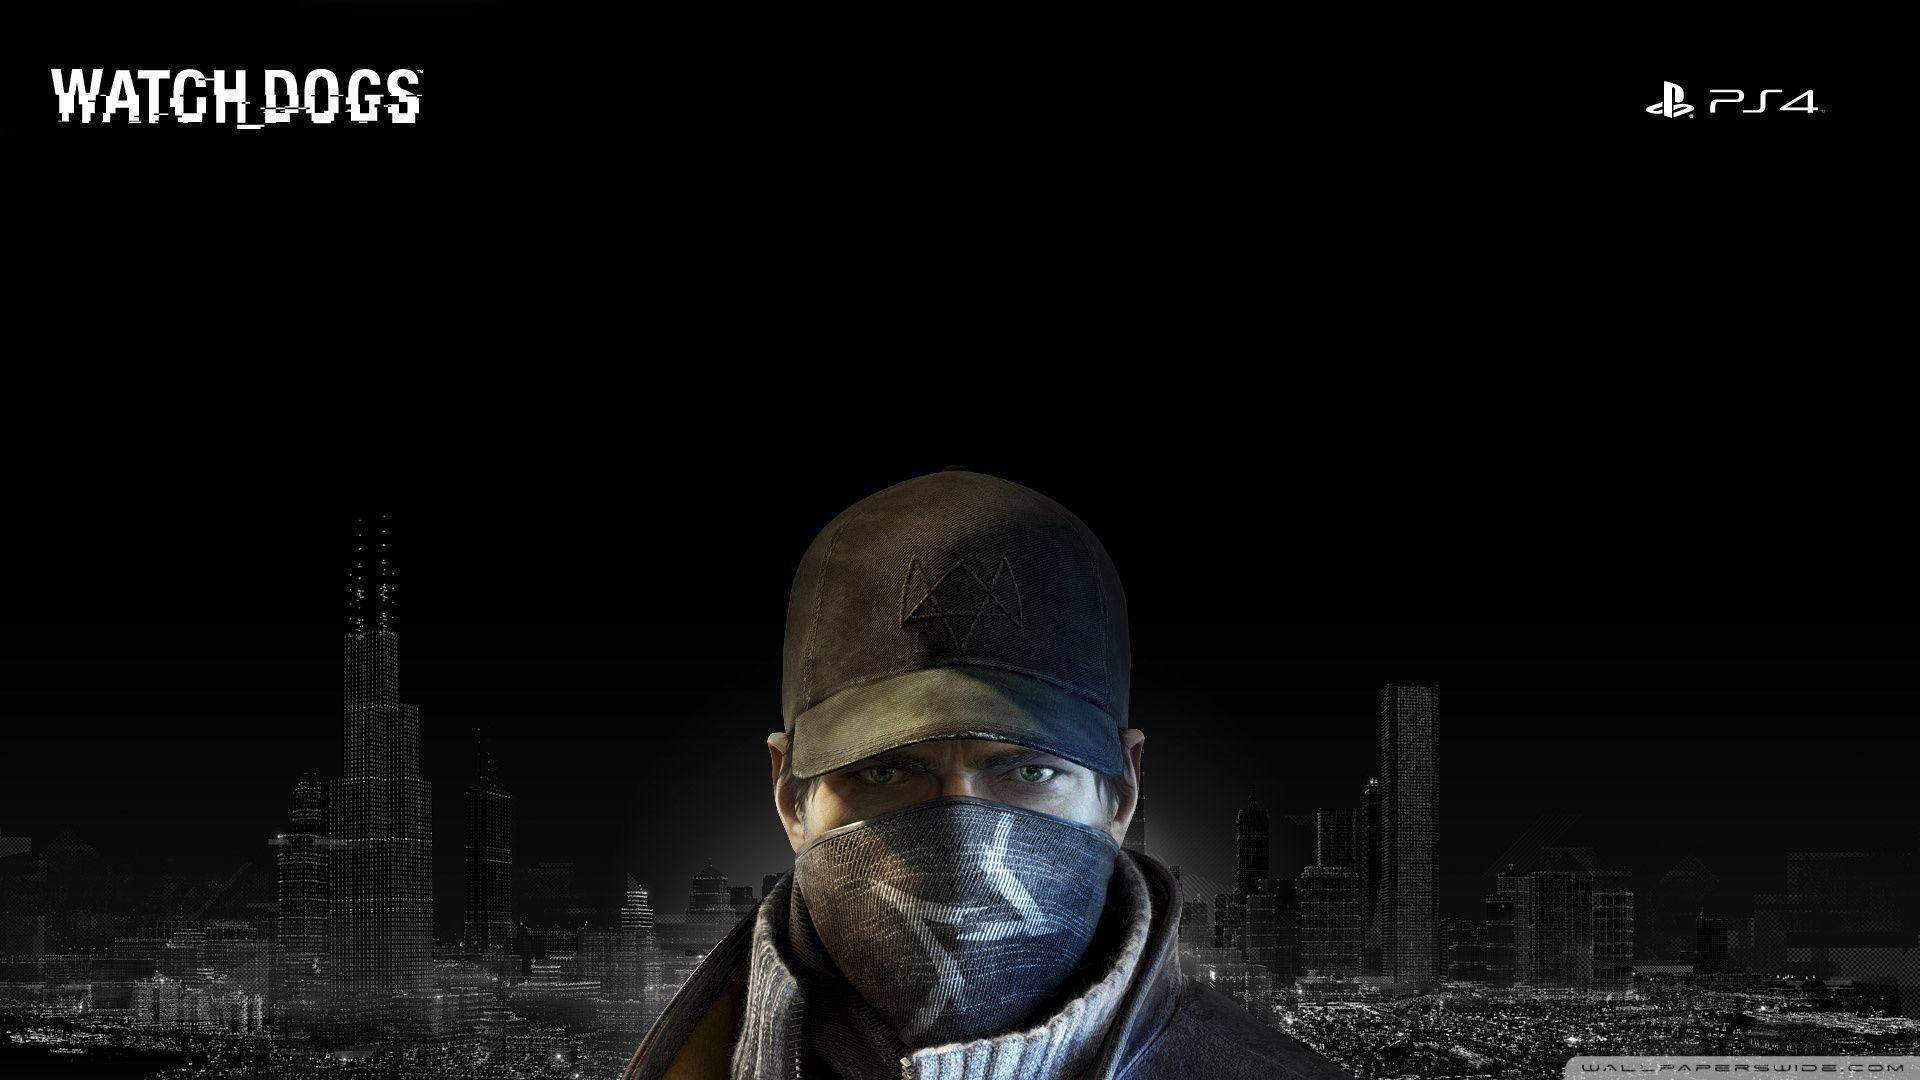 Watch Dogs Wallpapers Wallpaper Cave